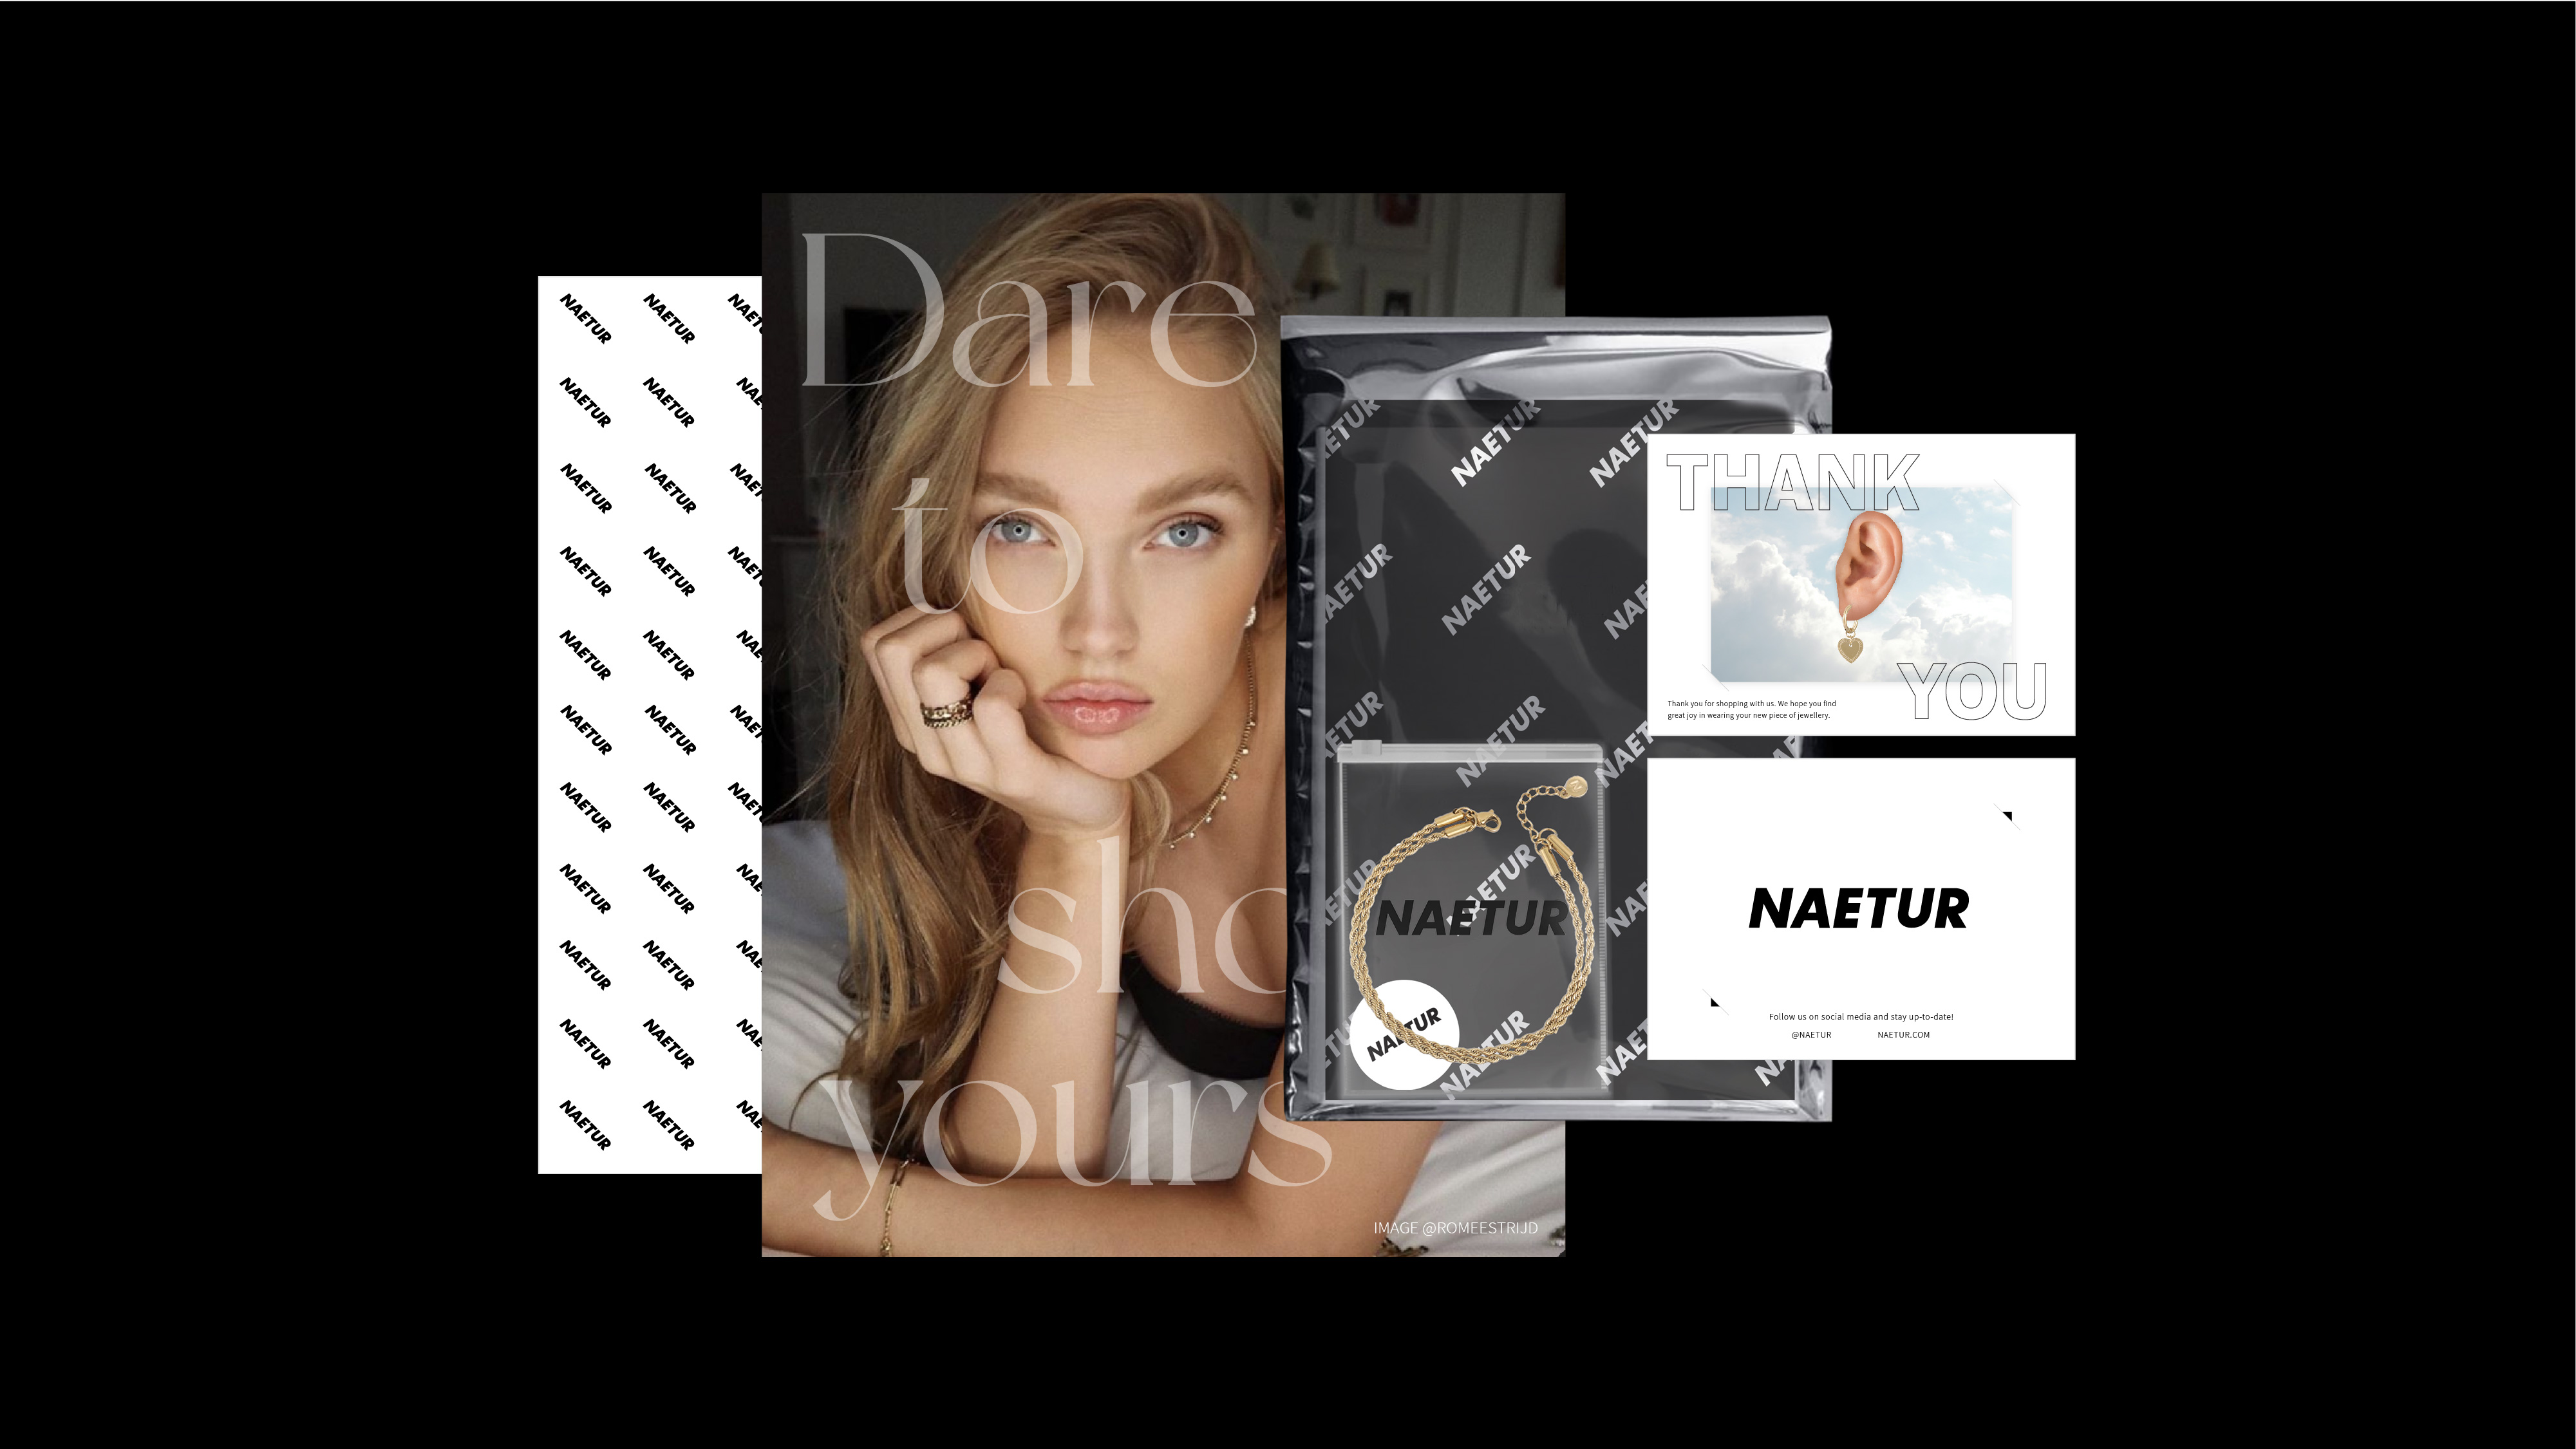 Naetur Customer Experience in Packaging Design